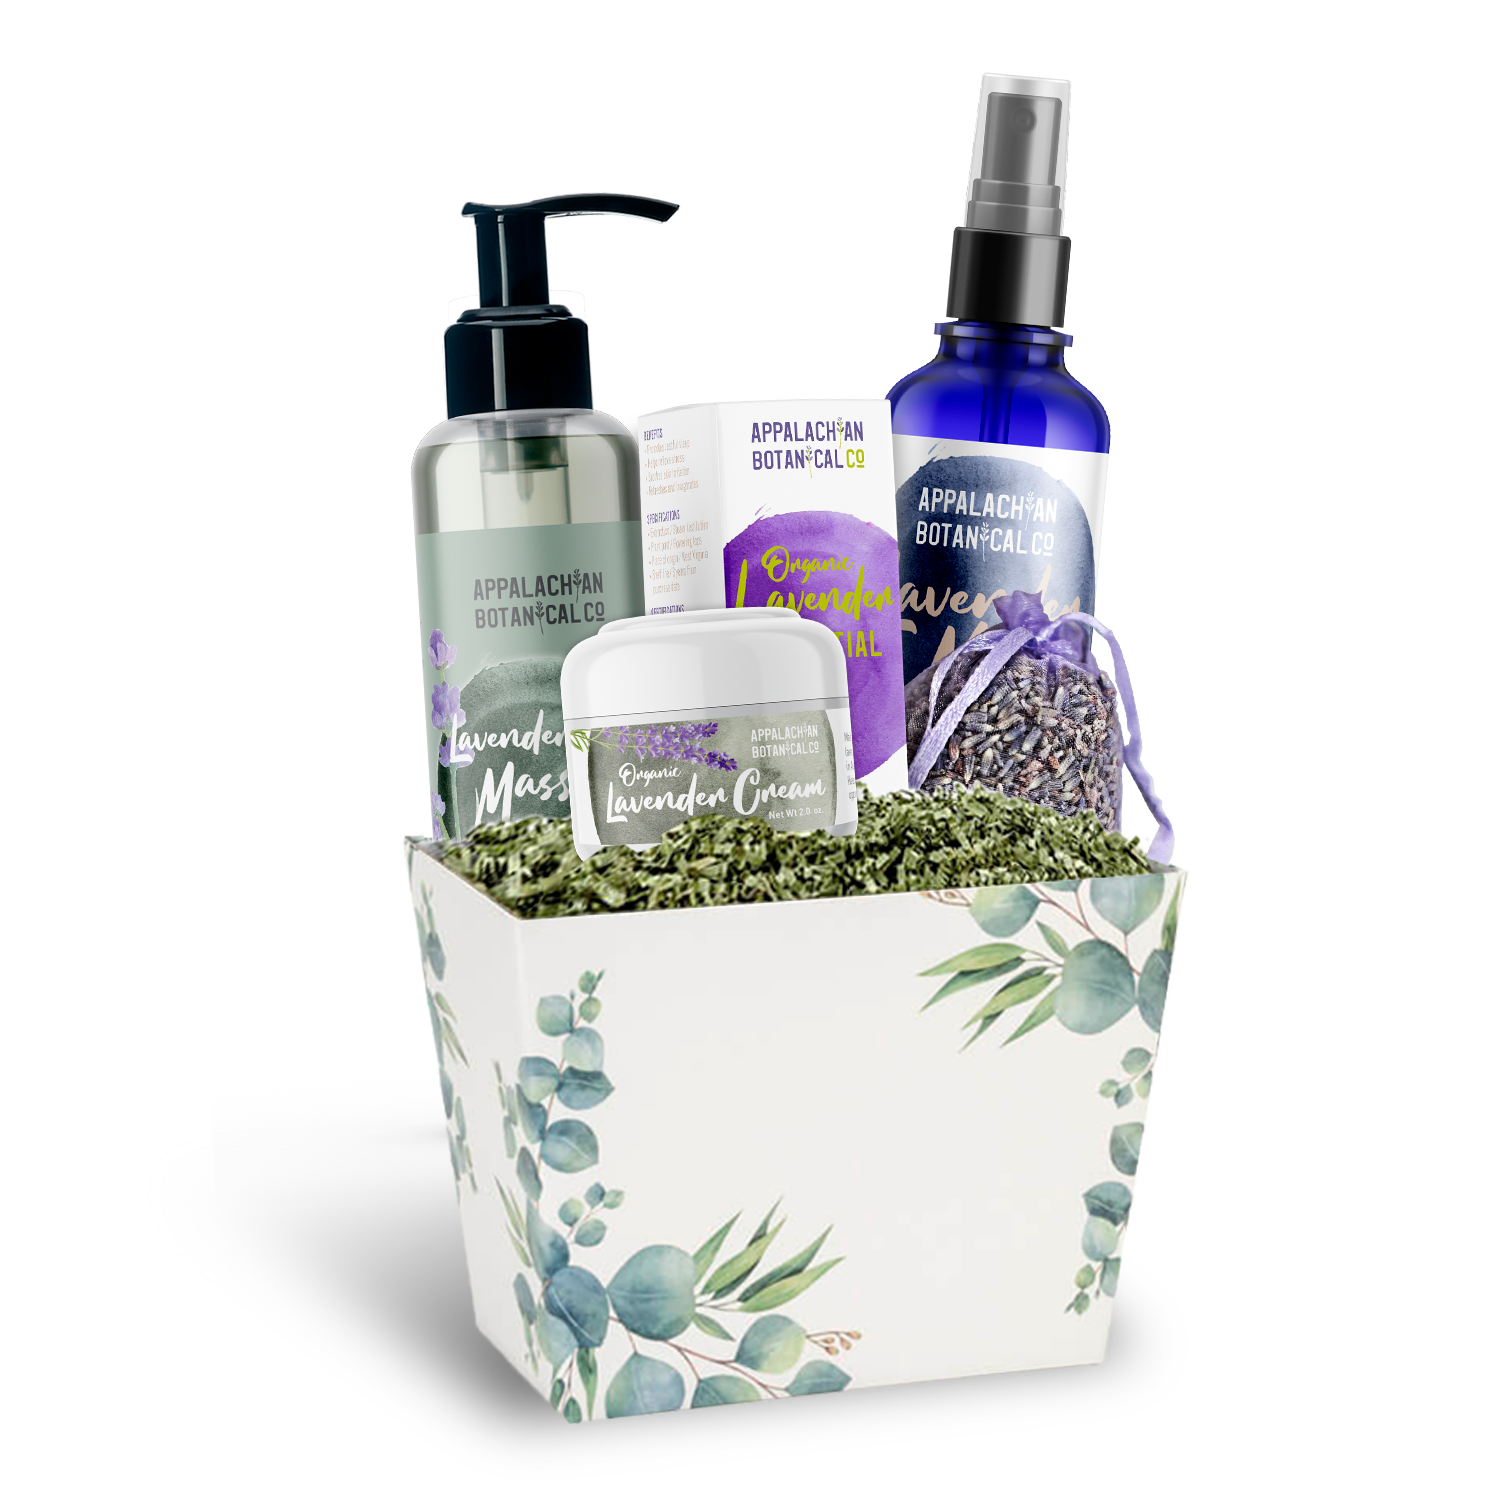 Applachian Botanical lavender massage oil, essential oil, mist, organic body cream, and lavender sachet in white gift box decorated with eucalyptus